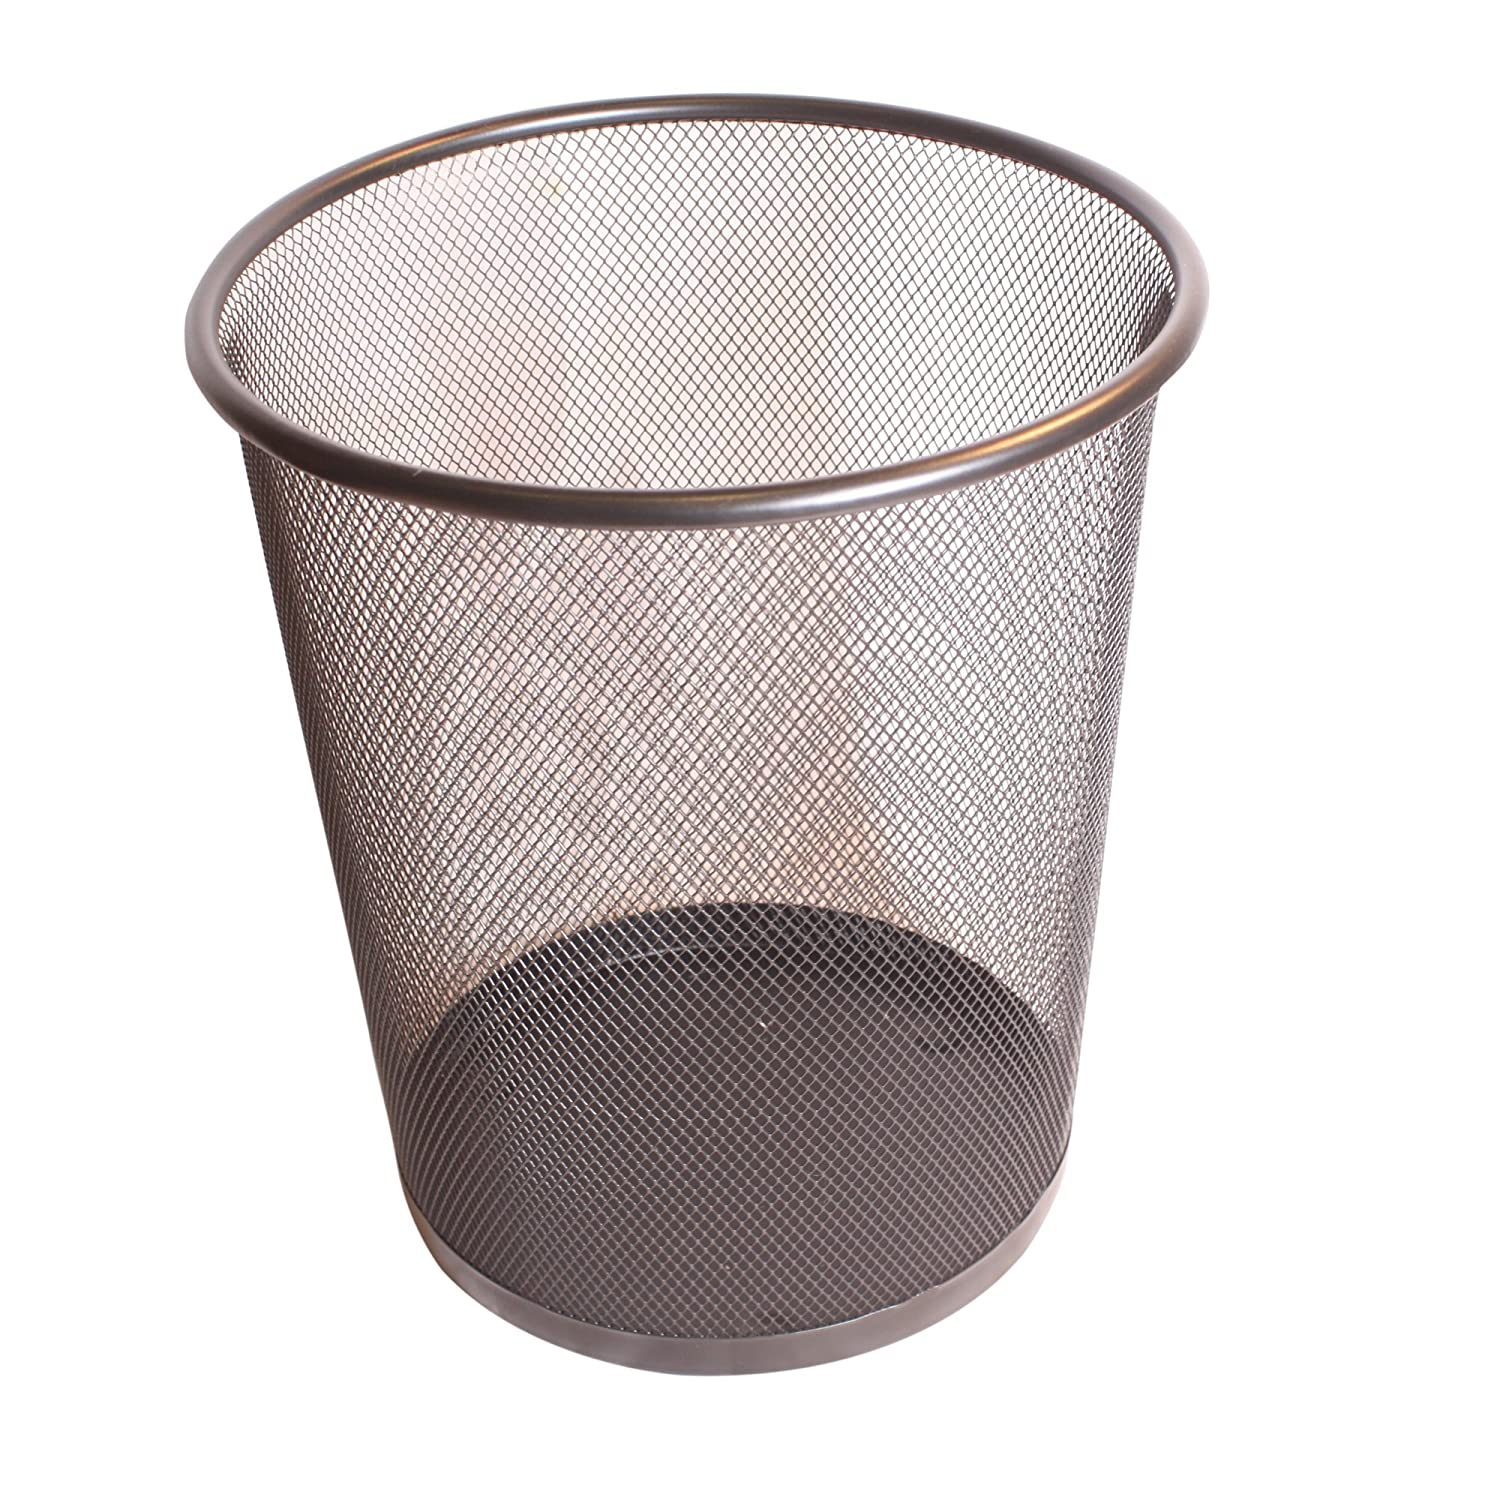 Contemporary Black Metal Mesh Desk Waste Paper Bin h28cm West5Products